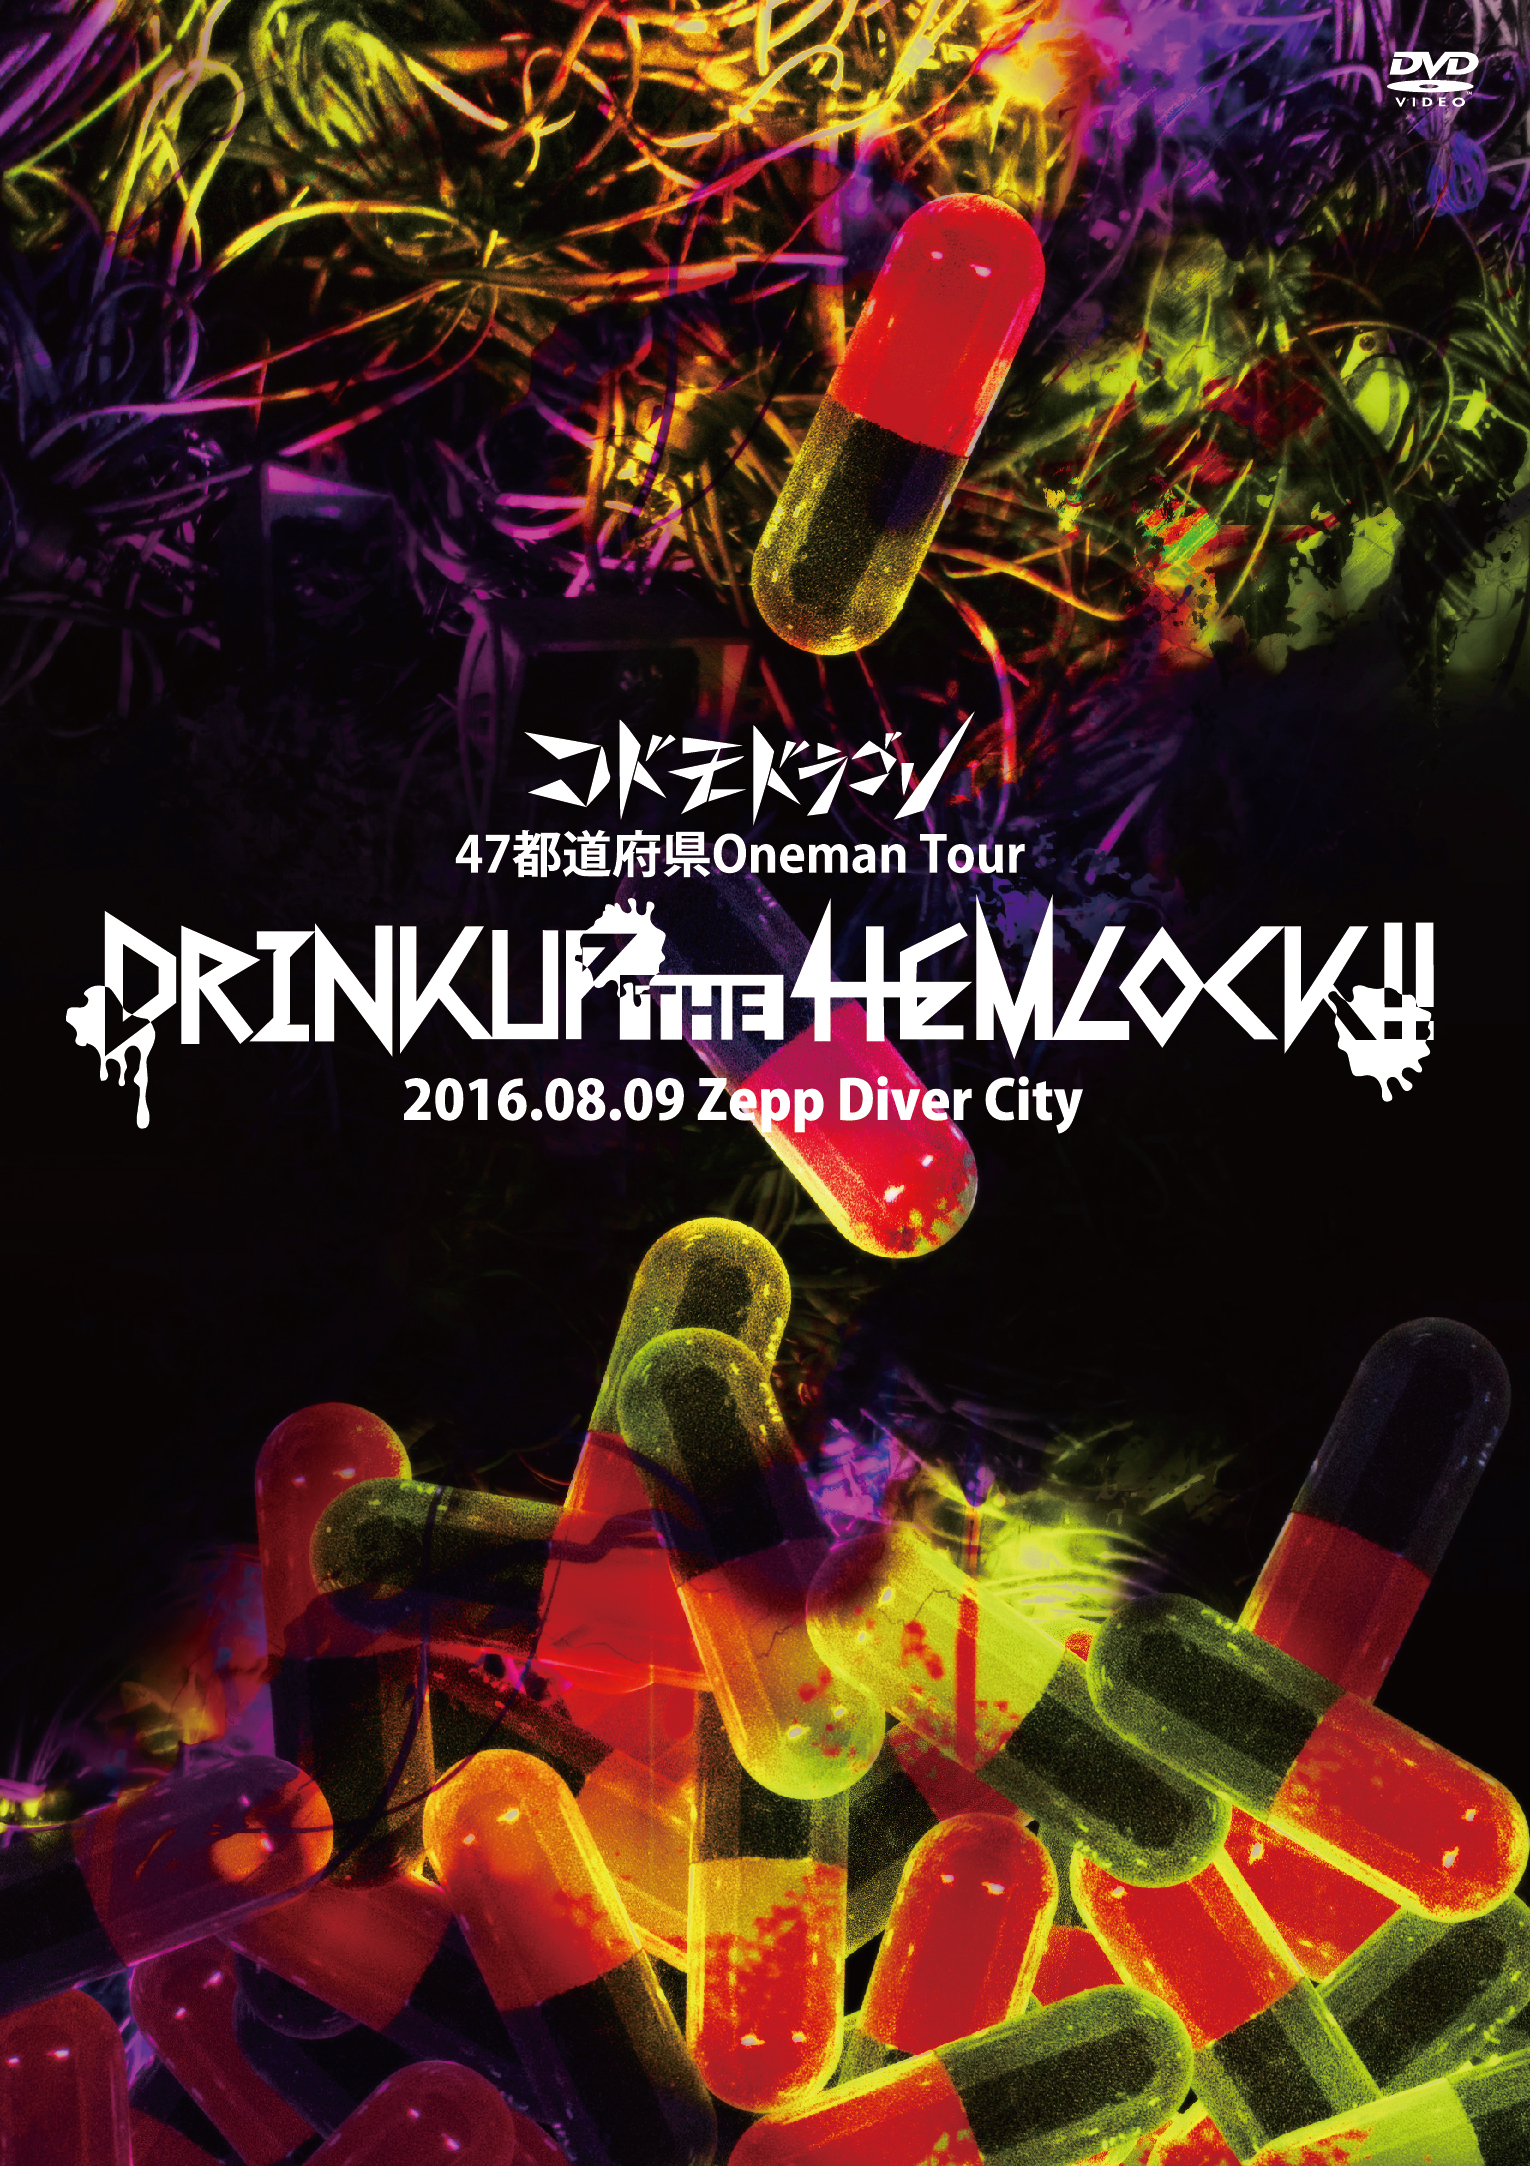 コドモドラゴン 47都道府県Oneman Tour 『「DRINK UP THE HEMLOCK!!」〜2016.08.09 Zepp Diver City〜』